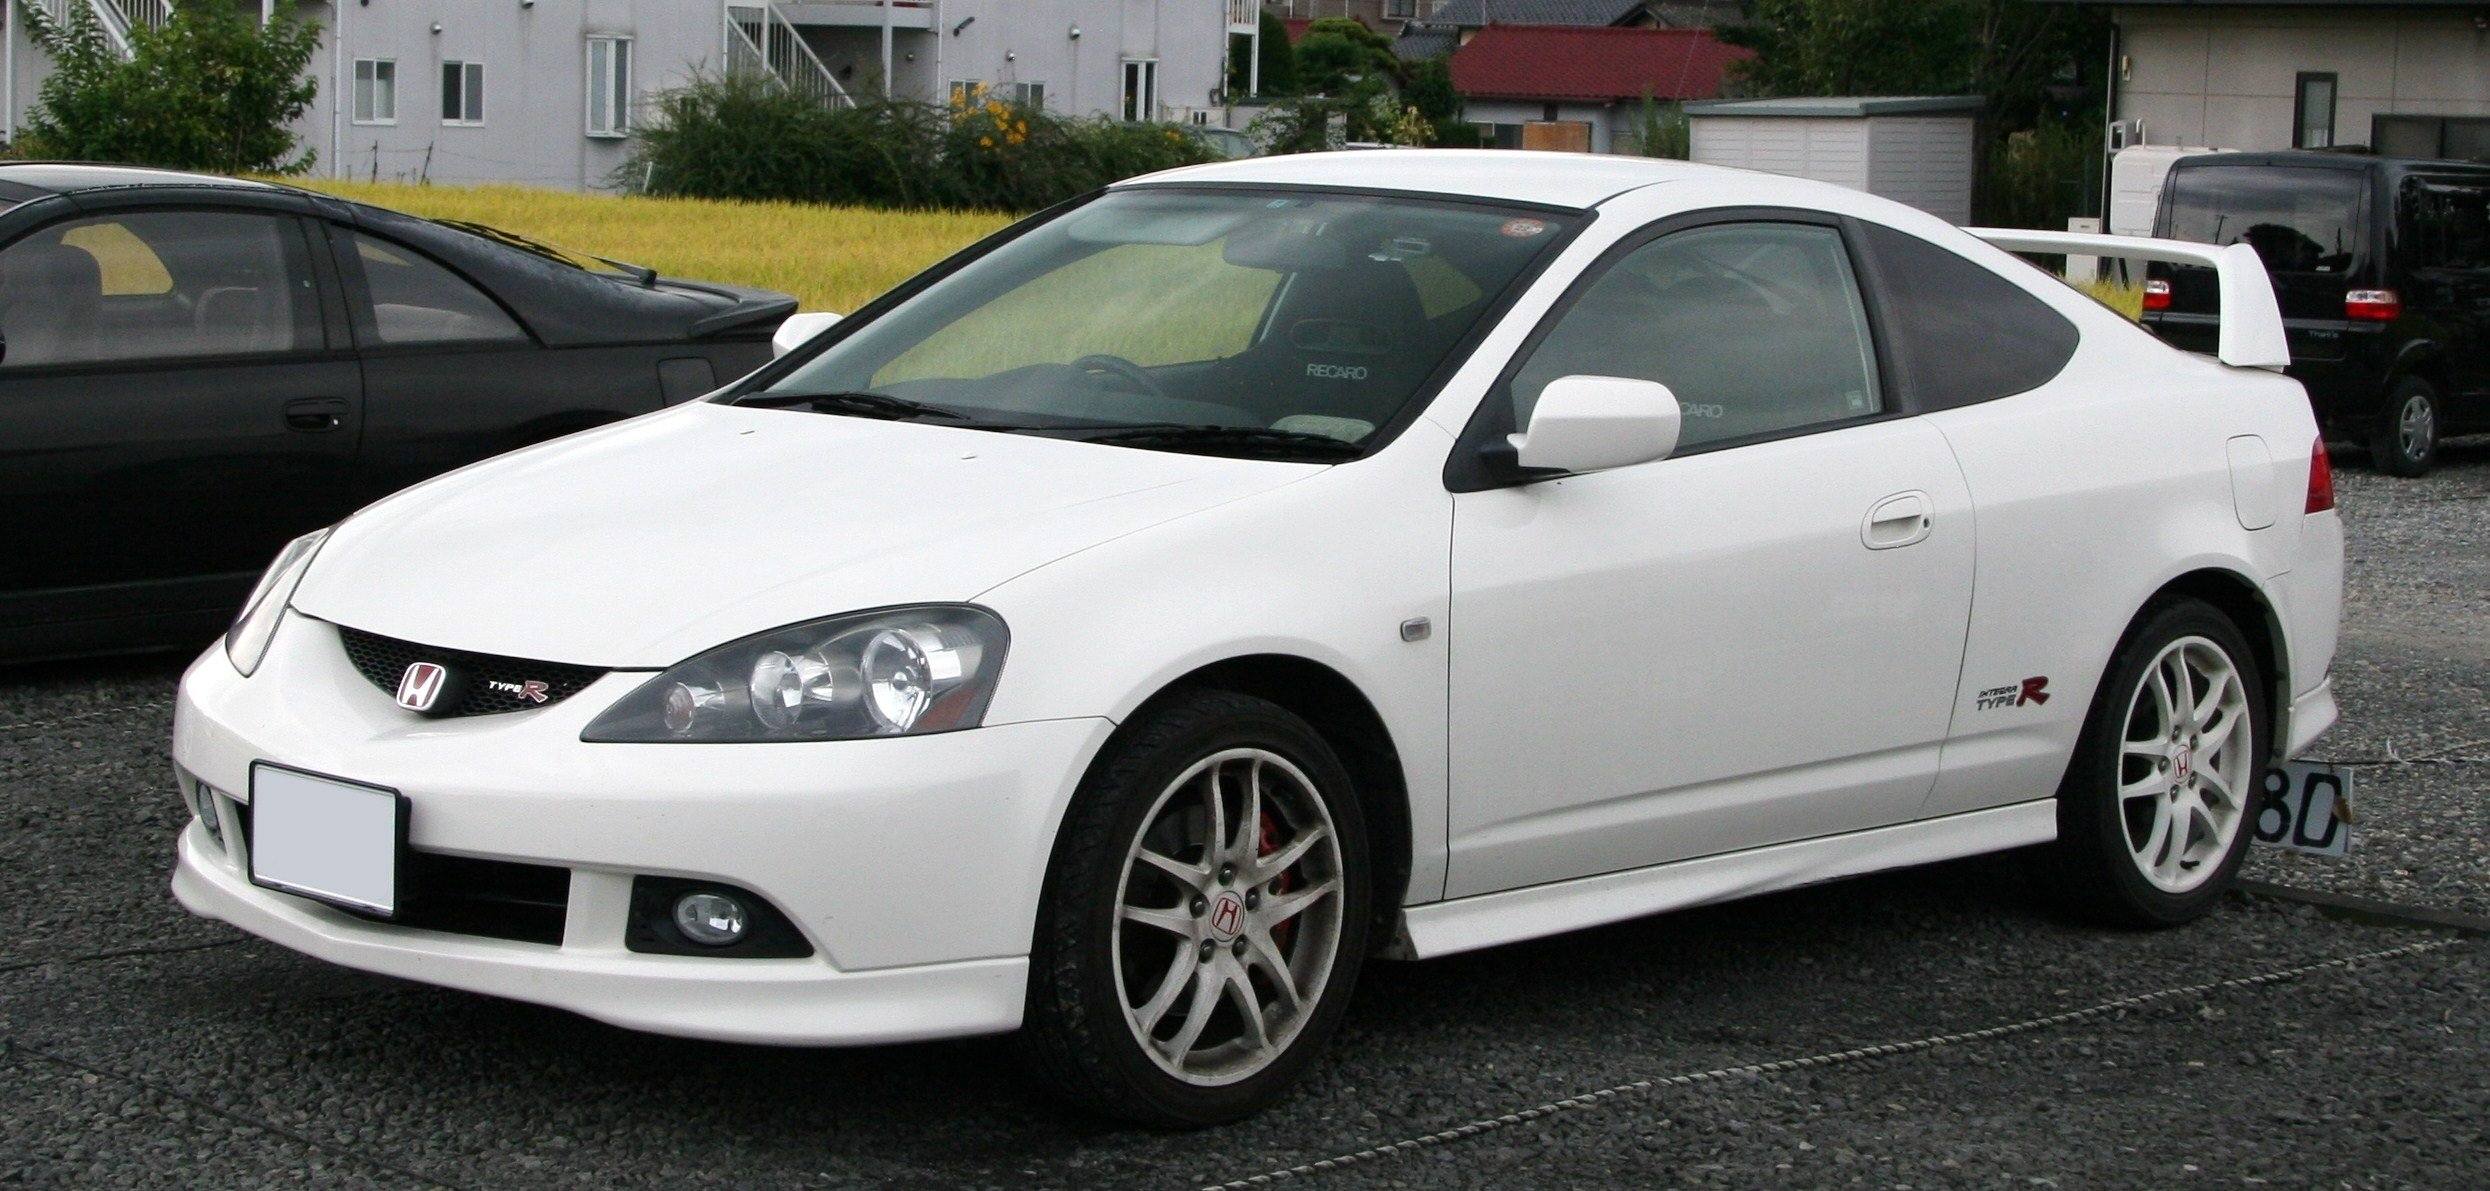 honda integra coupe (dc5) 2005 pictures